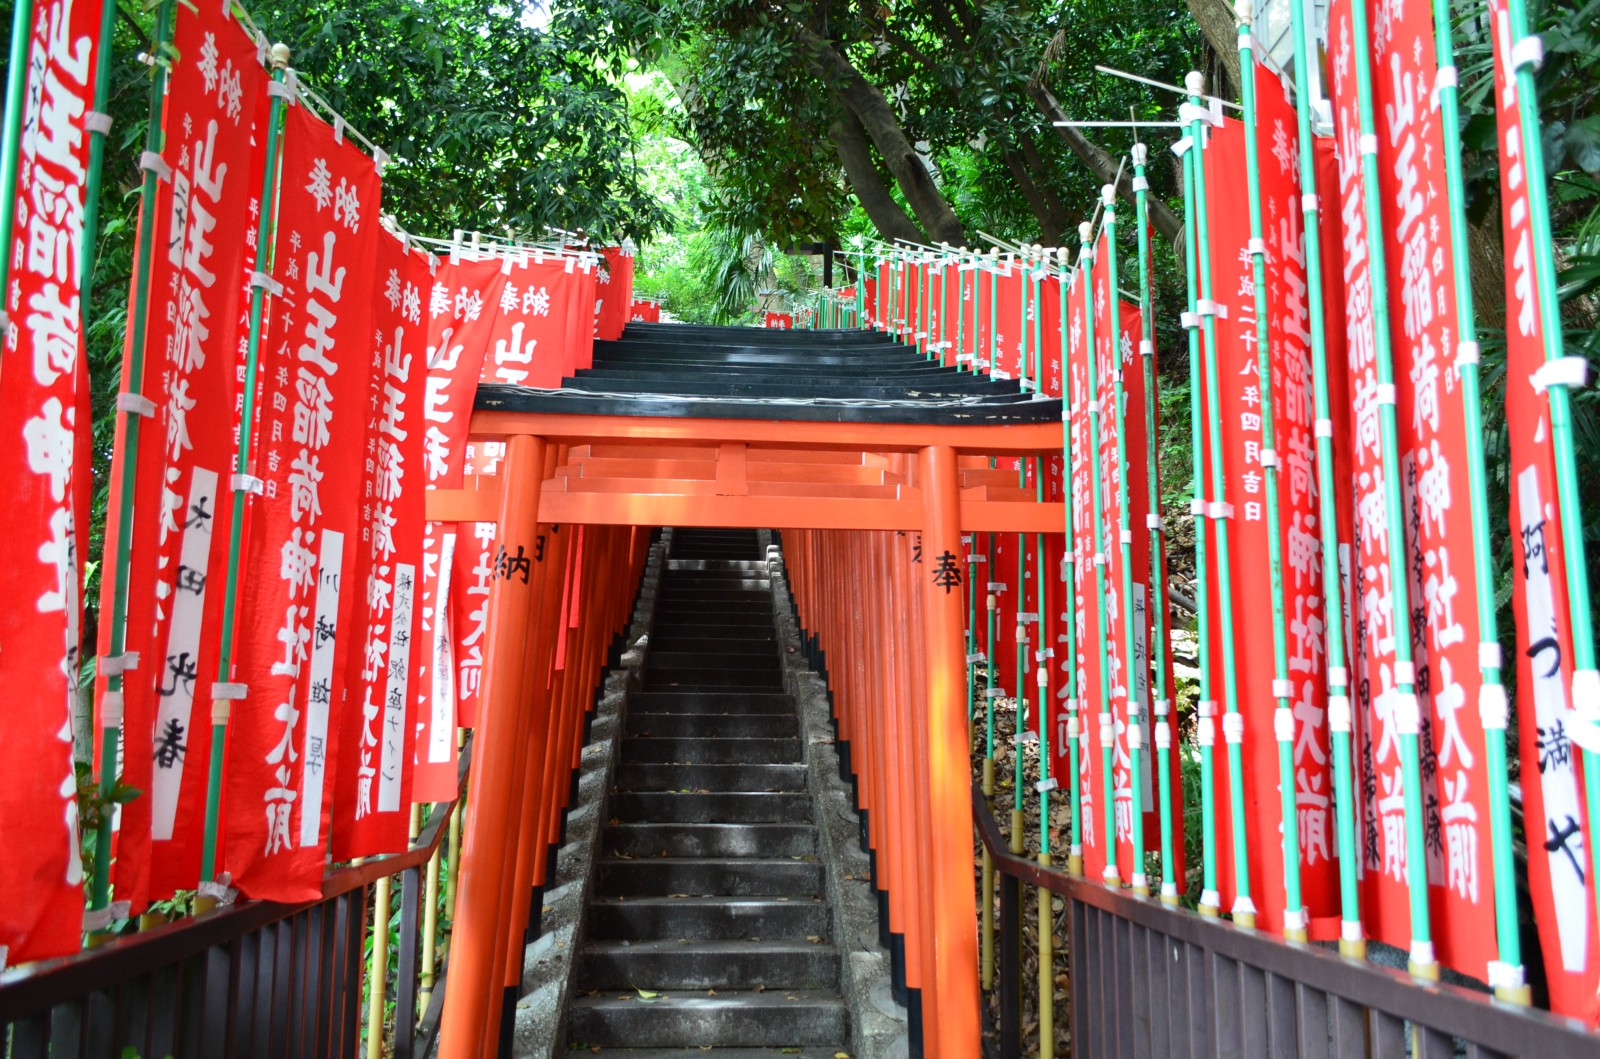 The entrance of Hie Shrine